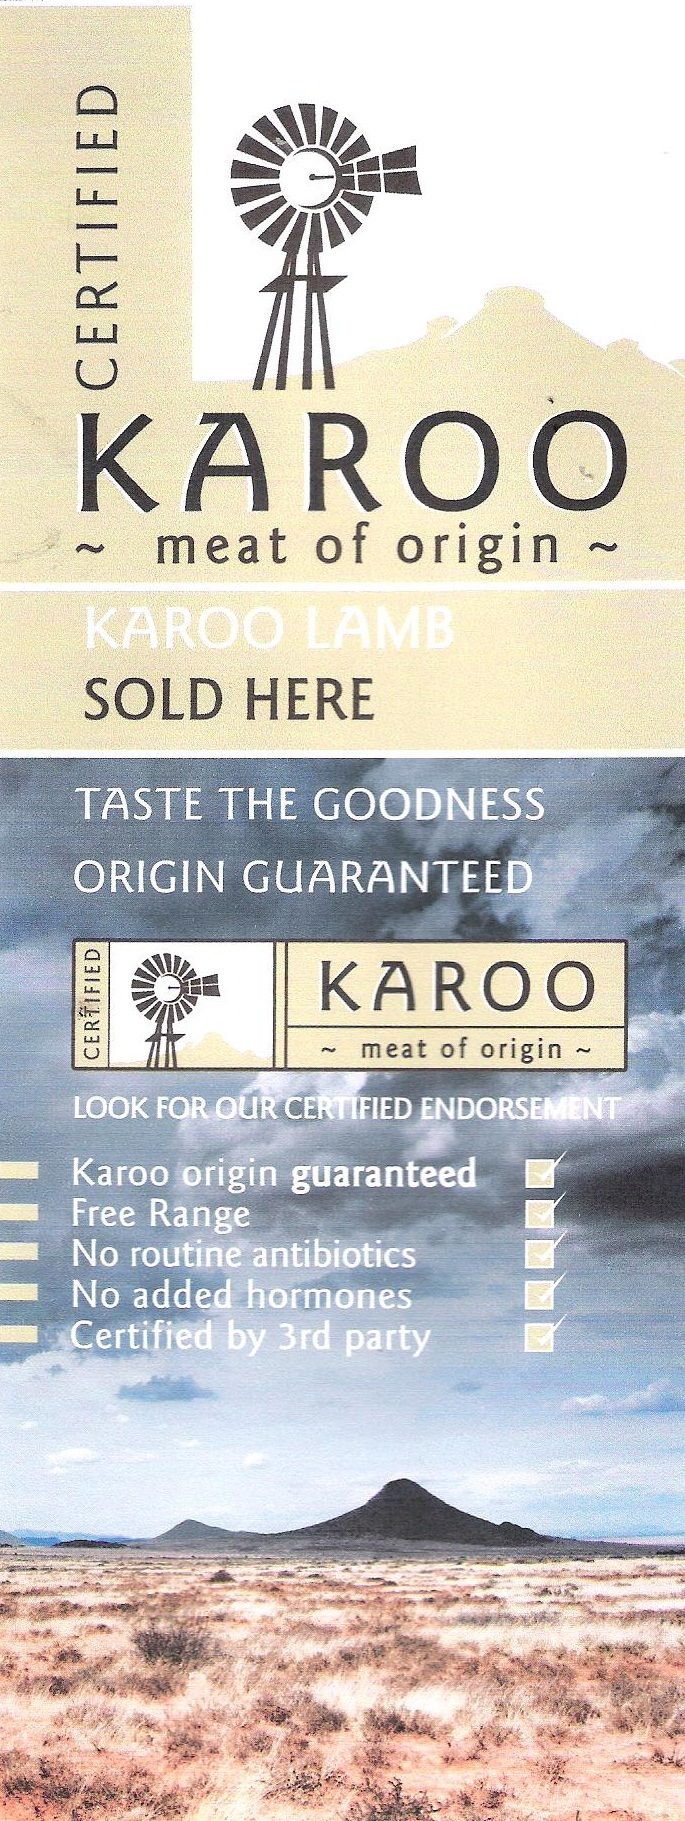 Karoo Meat of Origin - your only guarantee that it is from the Karoo